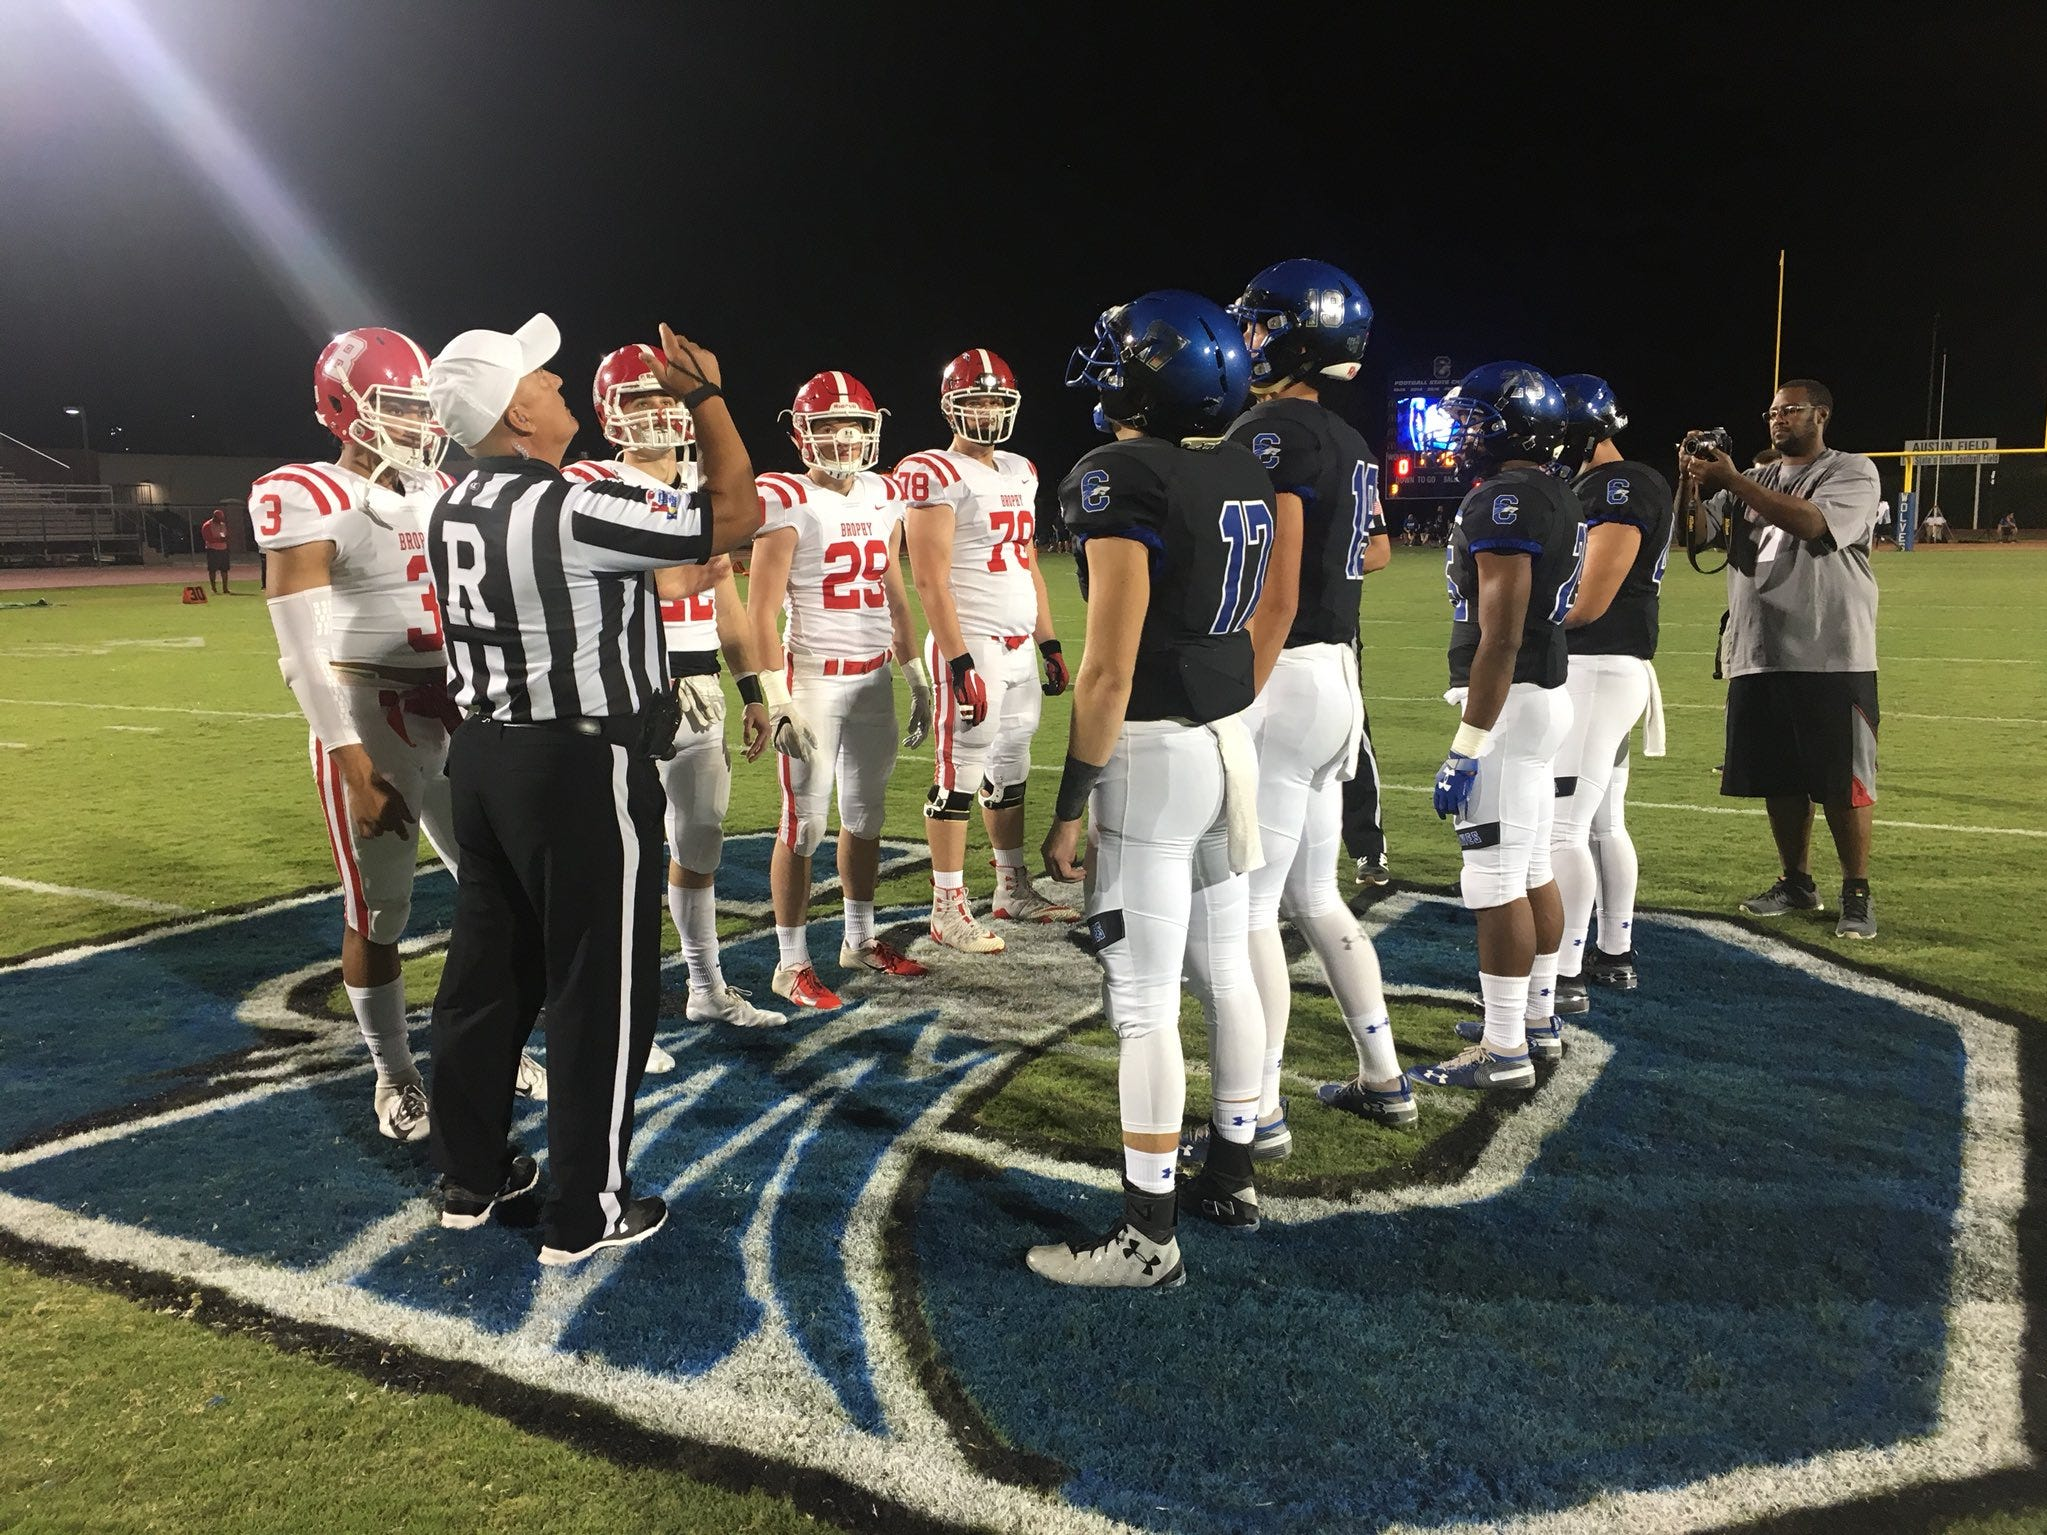 Chandler and Brophy at the coin toss prior to their 6A Premier region matchup on Friday, Oct. 5, 2018.